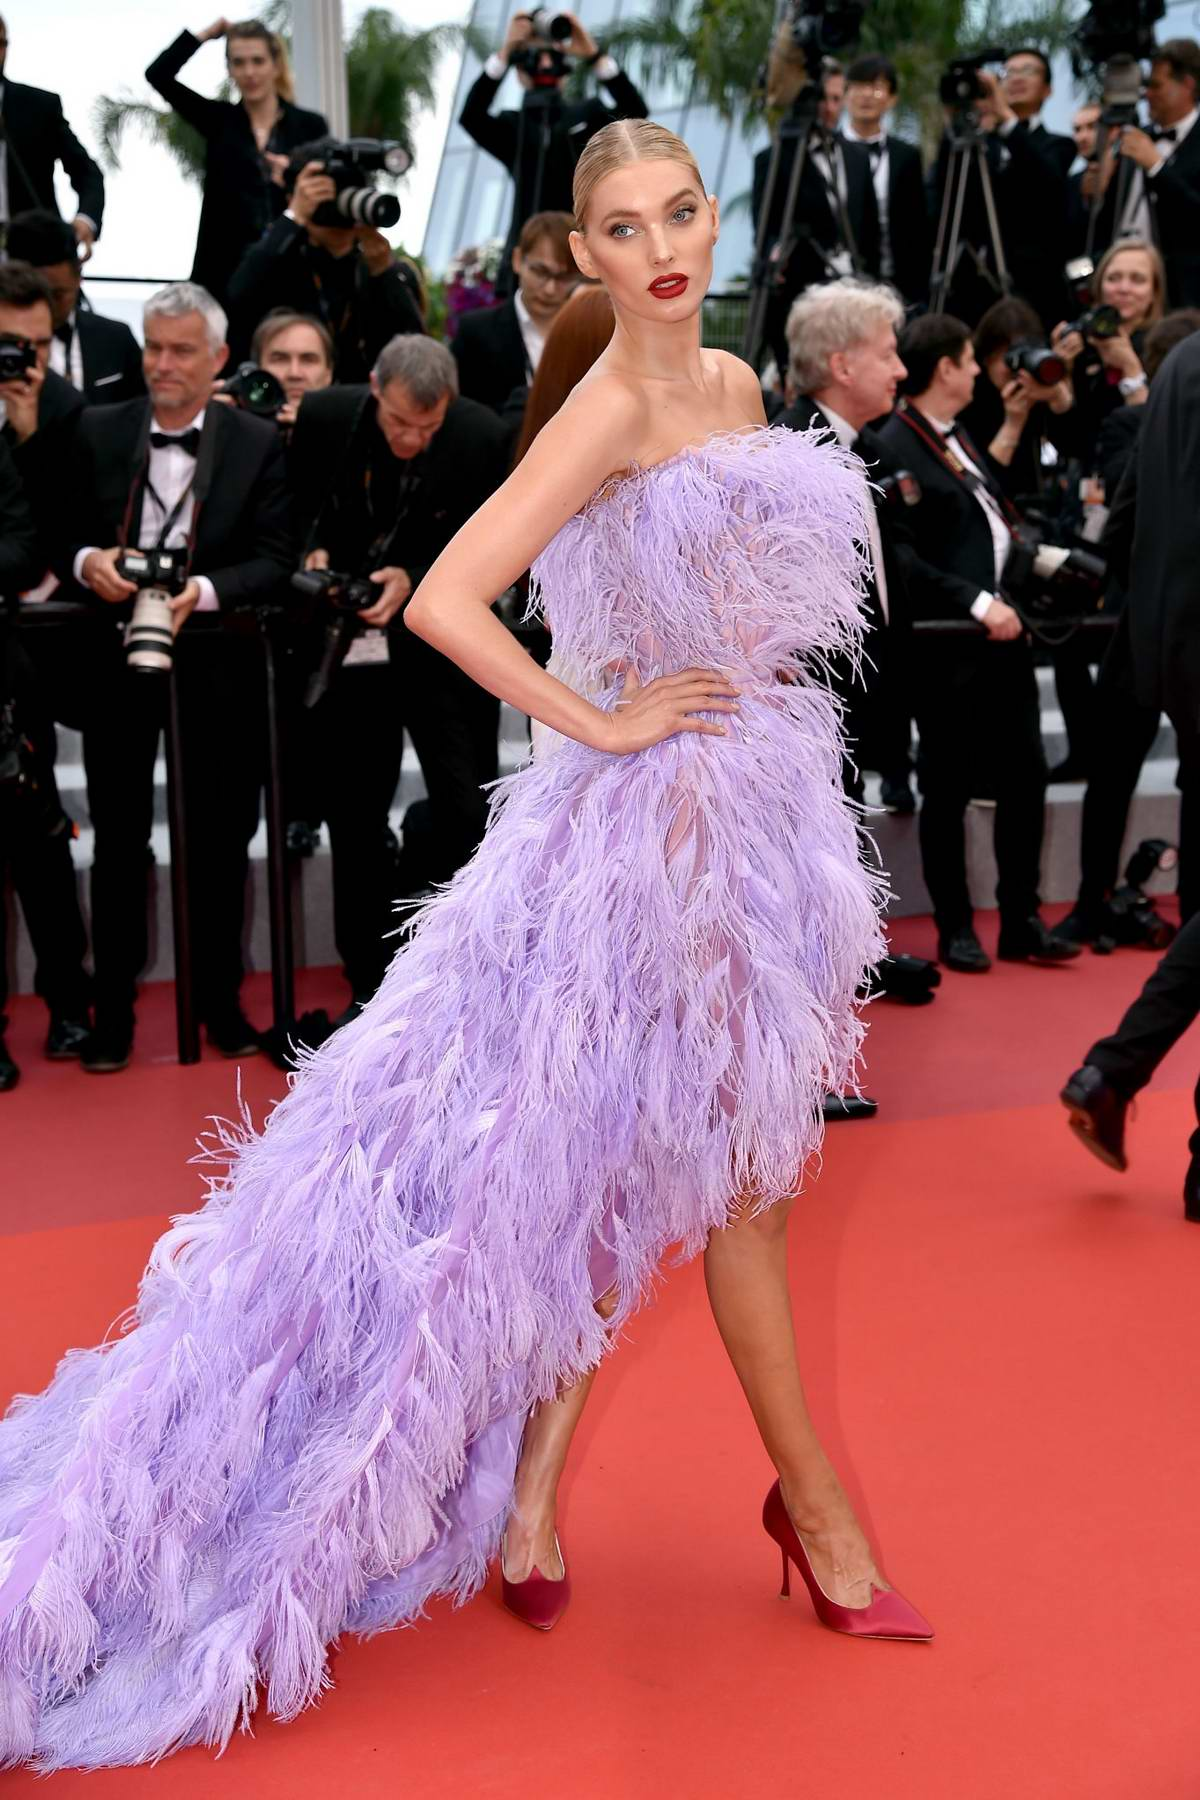 Elsa Hosk attends the screening of 'Sibyl' during the 72nd annual Cannes Film Festival In Cannes, France